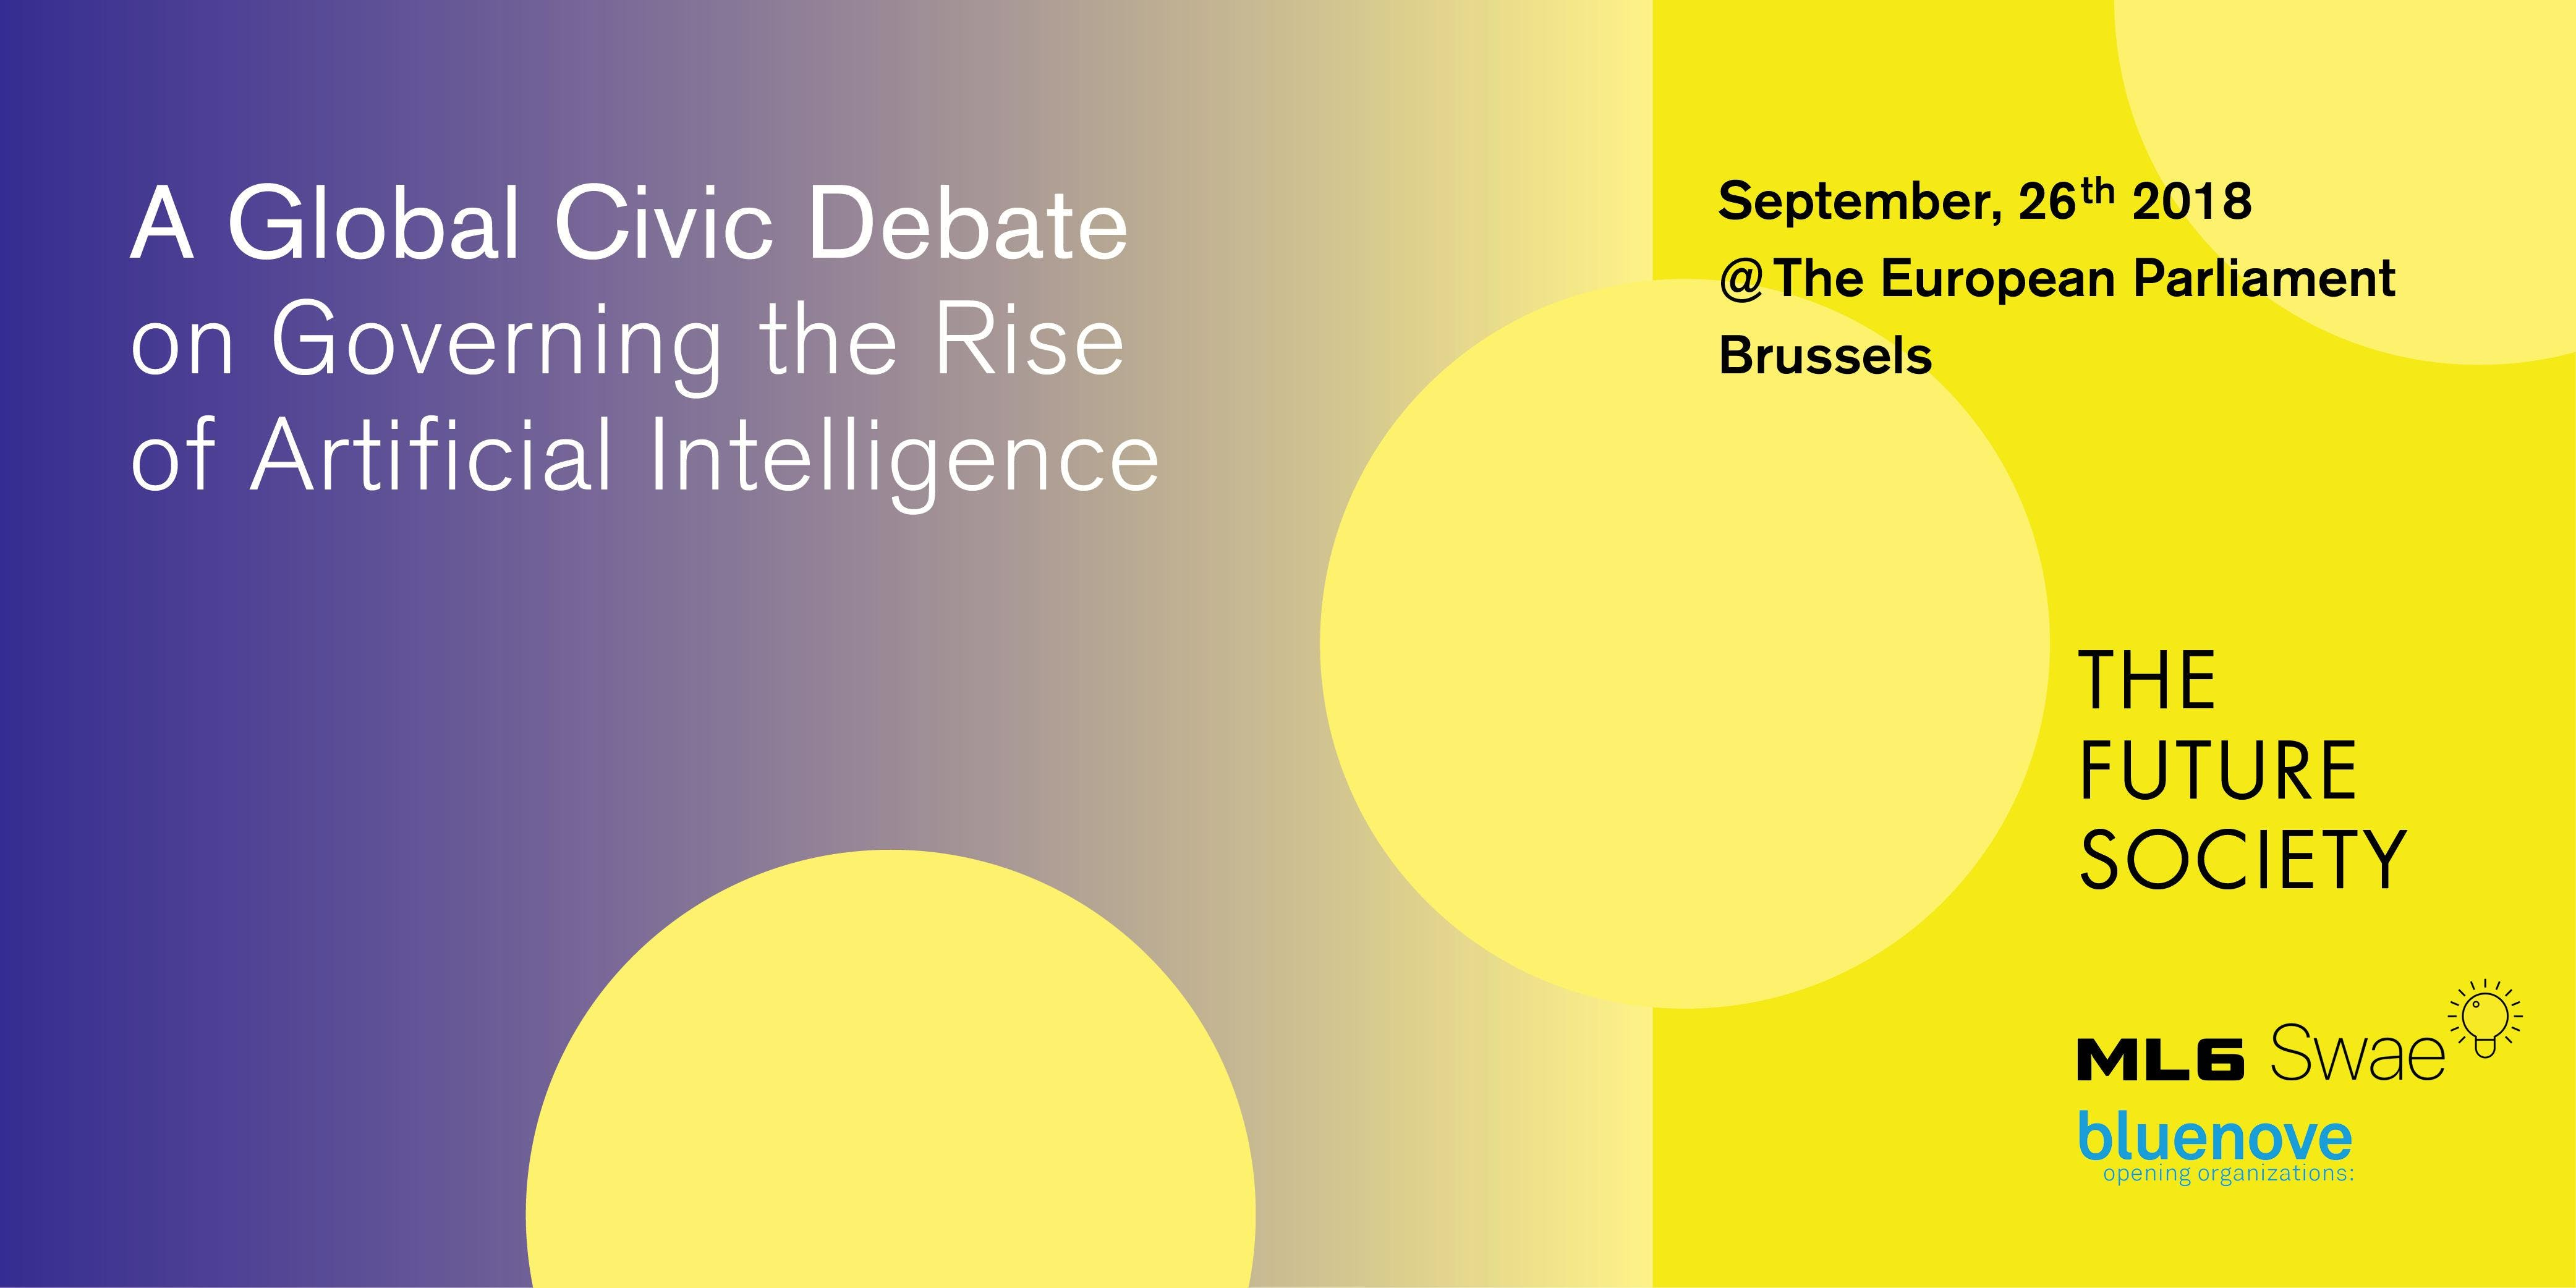 A Global Civic Debate on Governing the Rise o